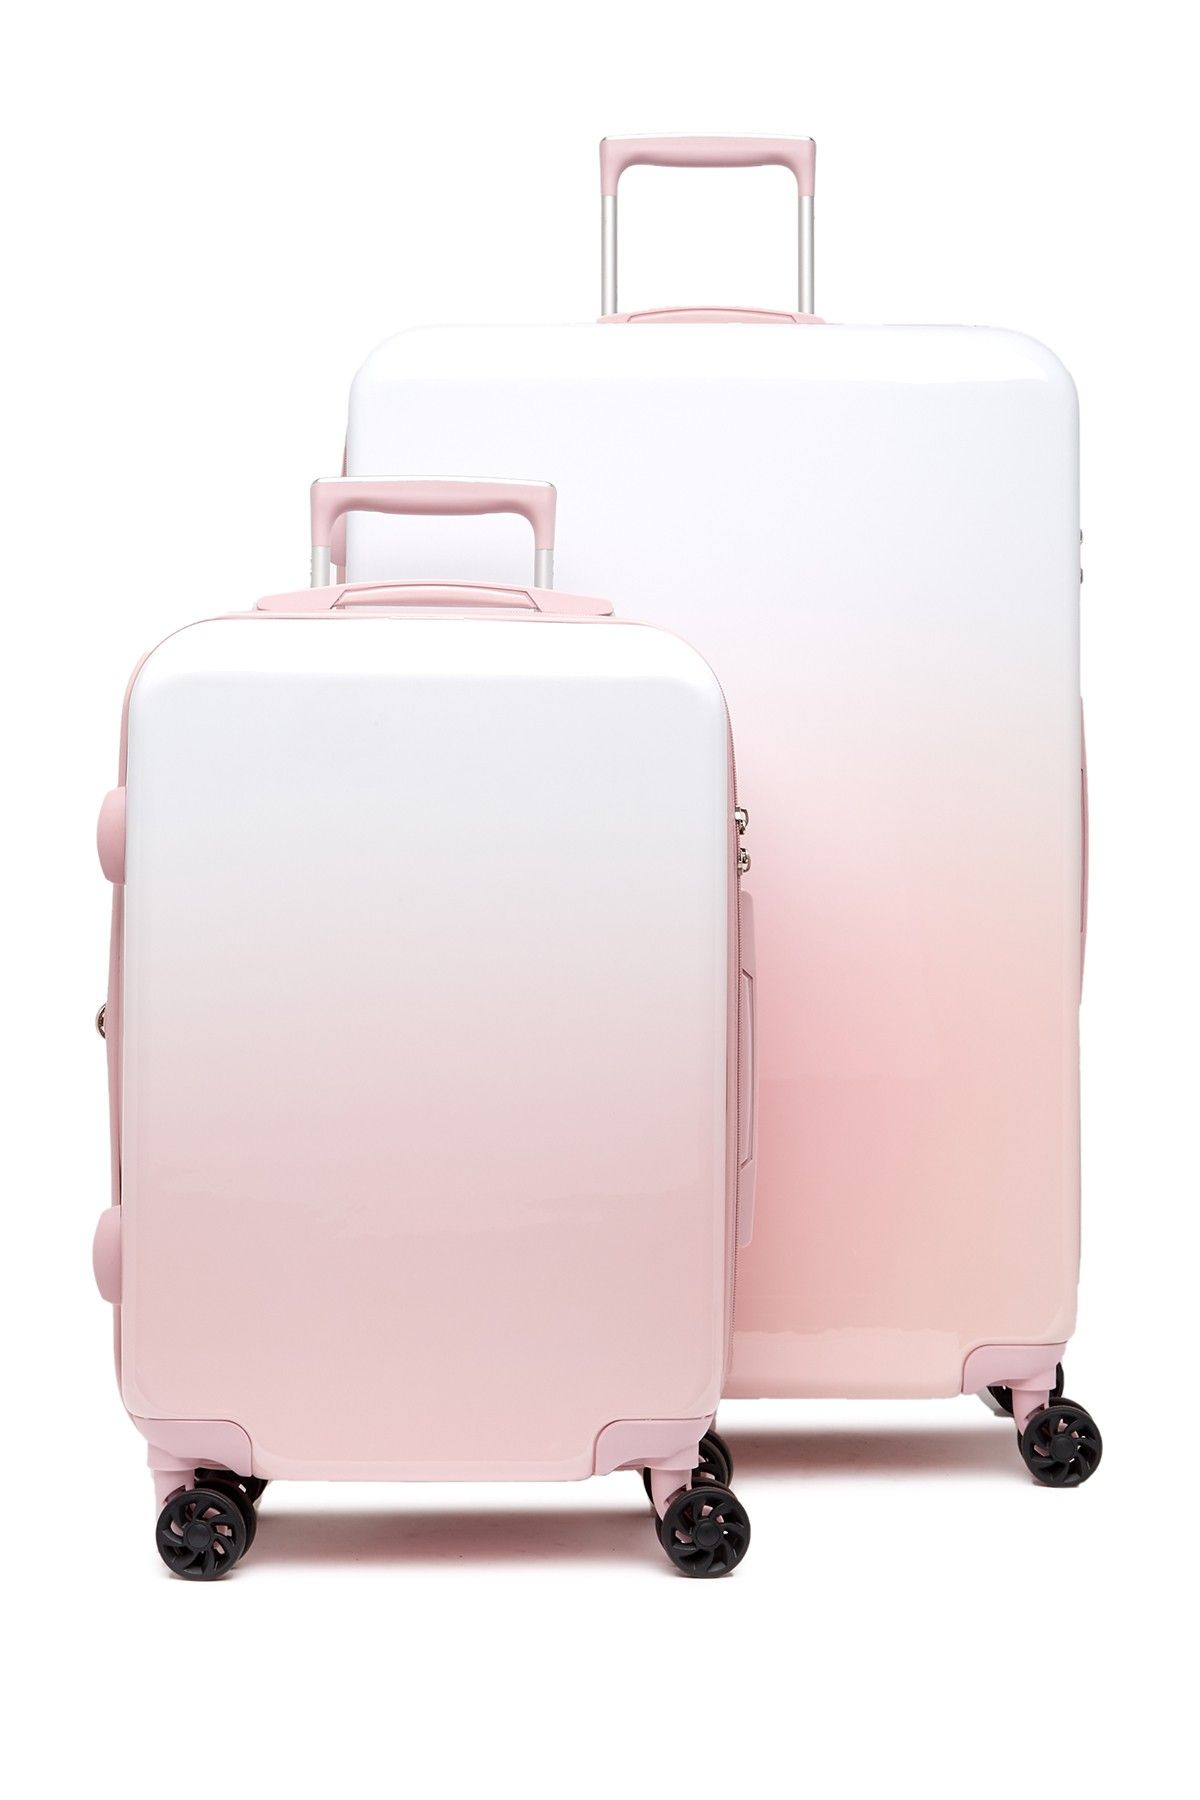 66bffb2e5 CALPAK LUGGAGE - Brynn 2-Piece Set is now 30% off. Free Shipping on orders  over $100.